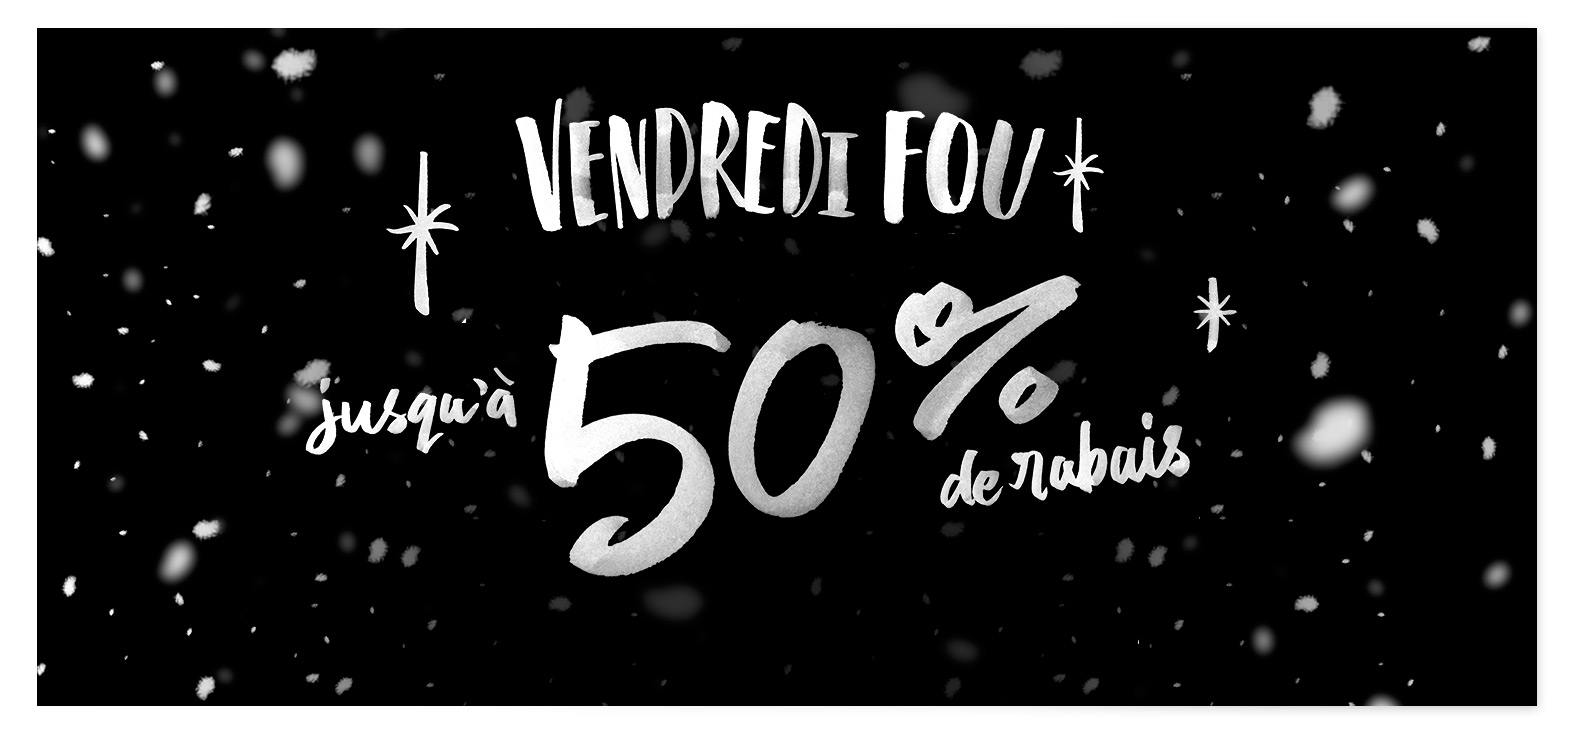 A17-BGL_BLACKFRIDAY-1-VENDREDI.psd